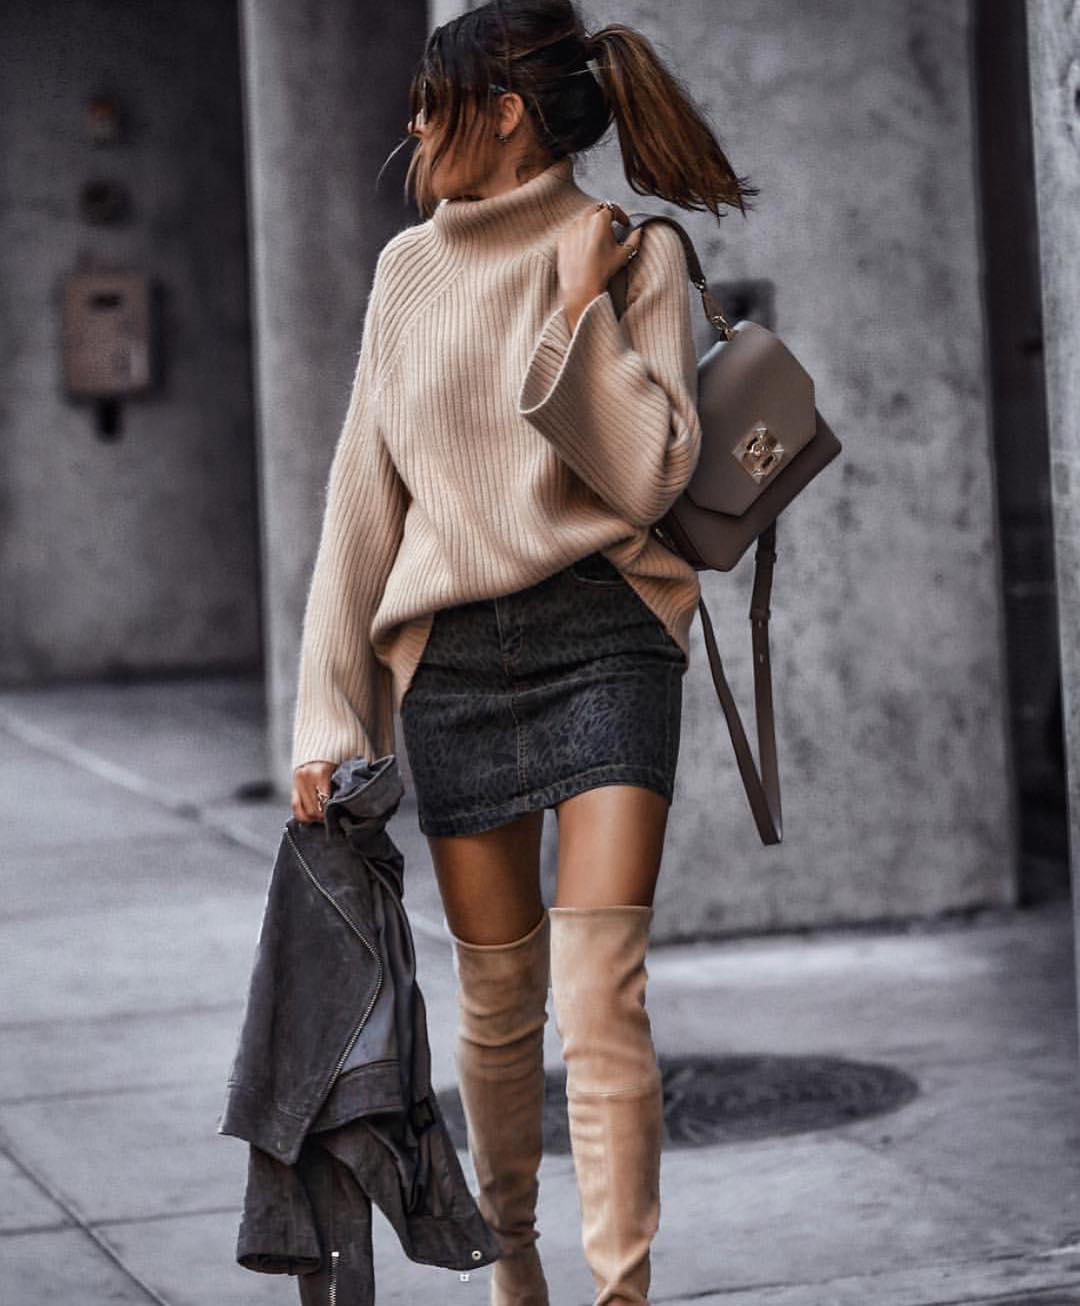 Sophisticated Casual Look For Autumn: Slouchy Sweater And Leopard Print Denim Skirt 2019